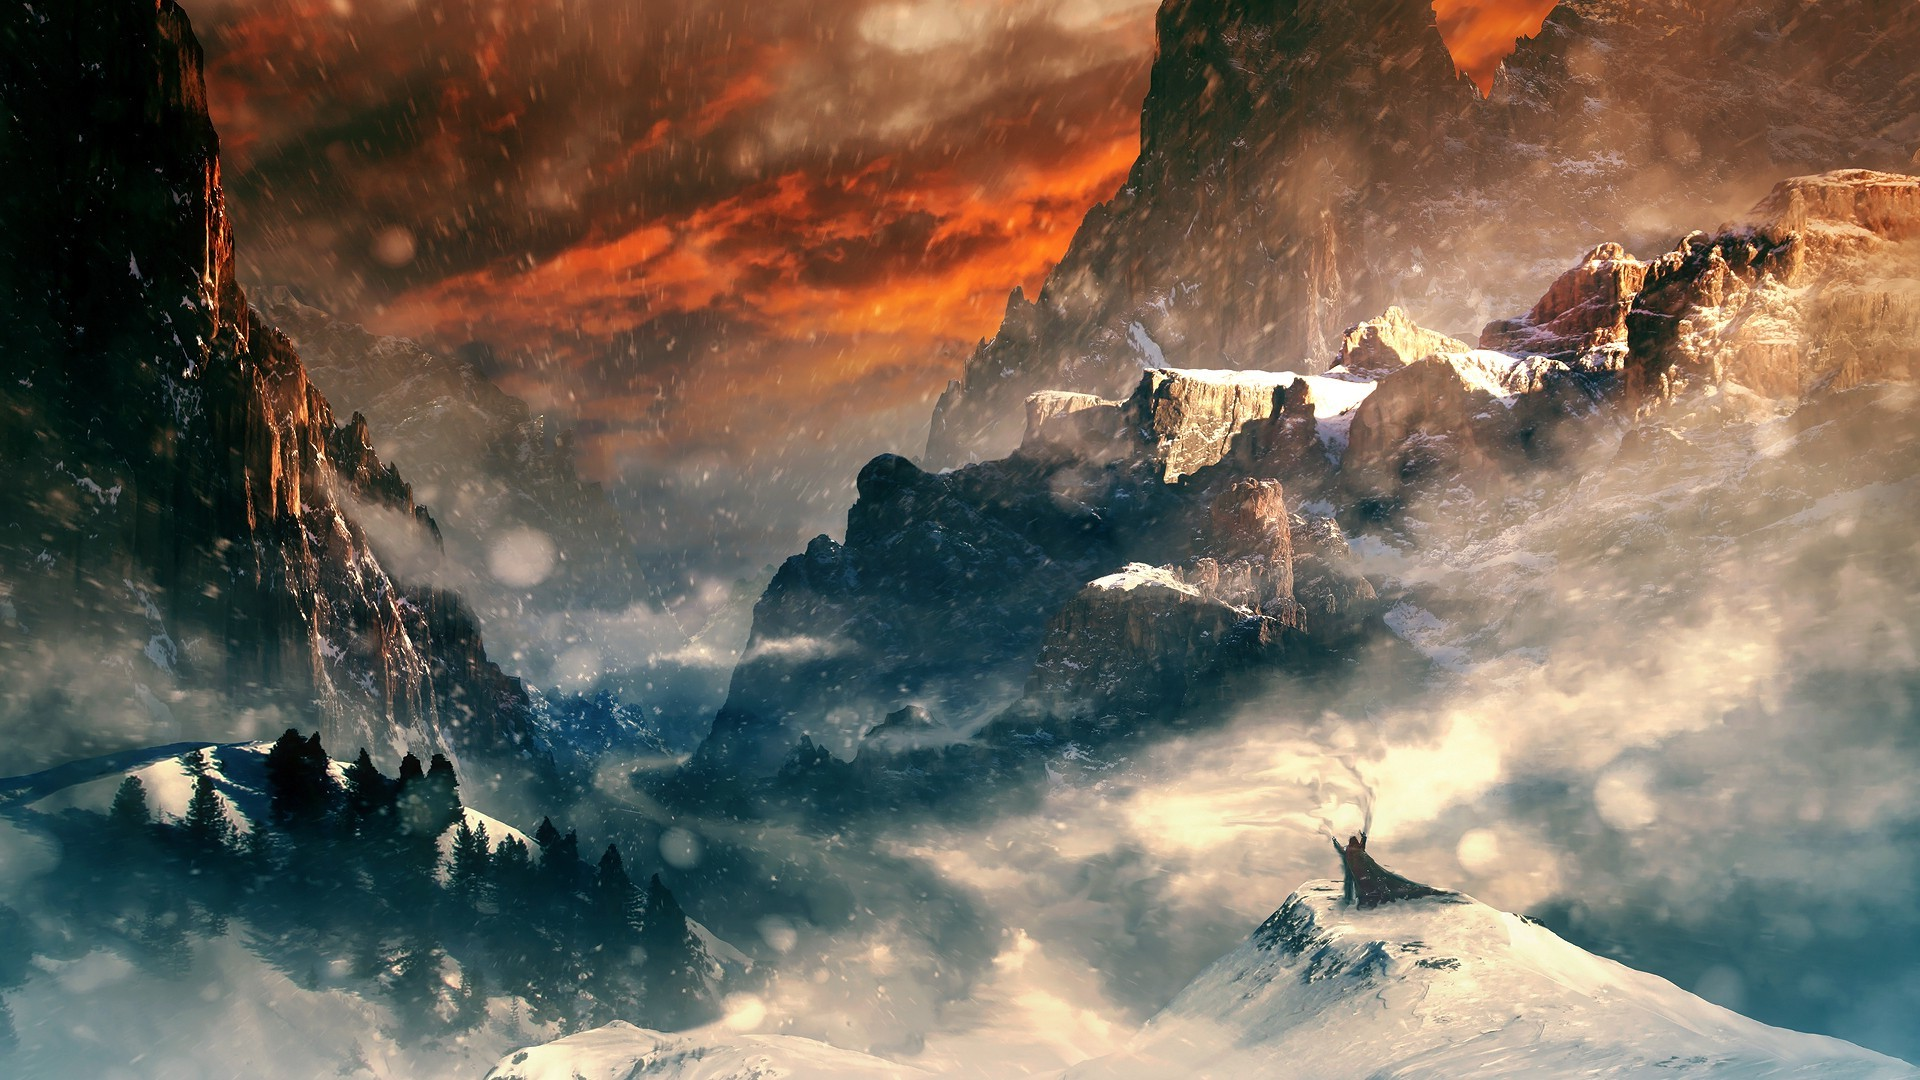 New 3d Desktop Wallpaper Hd 16 Fantasy Art Mountain Landscape Wallpapers Hd Desktop